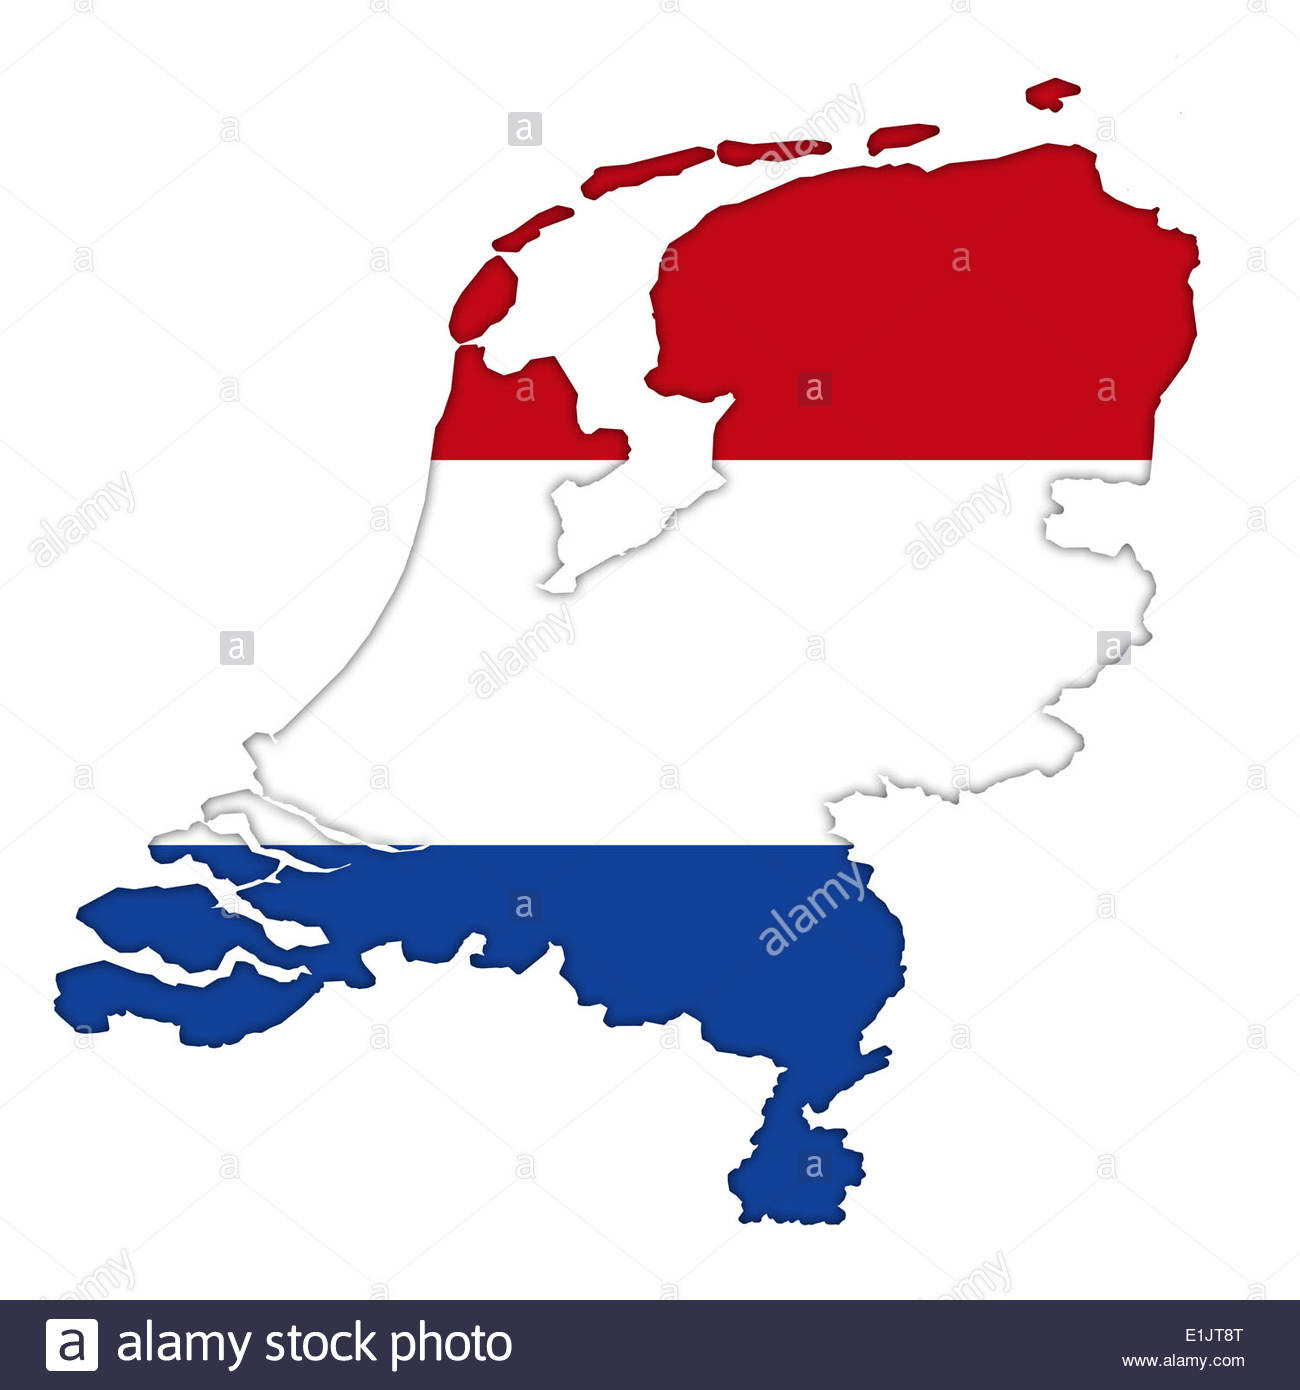 Netherlands flag icon logo map stock photo 69870328 alamy netherlands flag icon logo map publicscrutiny Image collections